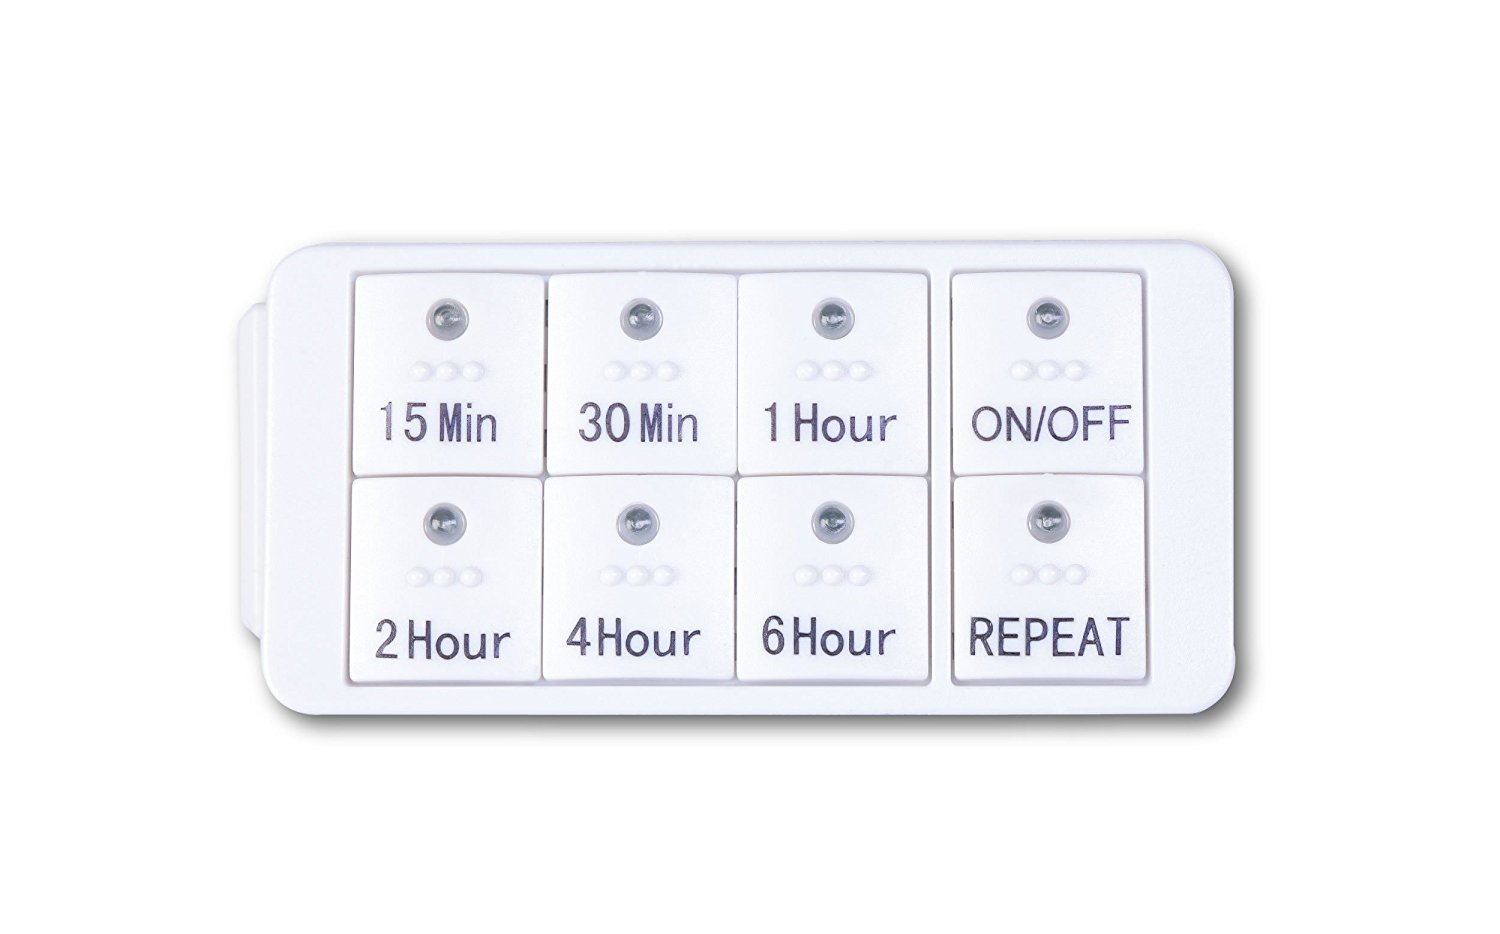 Century smart digital countdown timer with repeat function for light fan appliance by Century